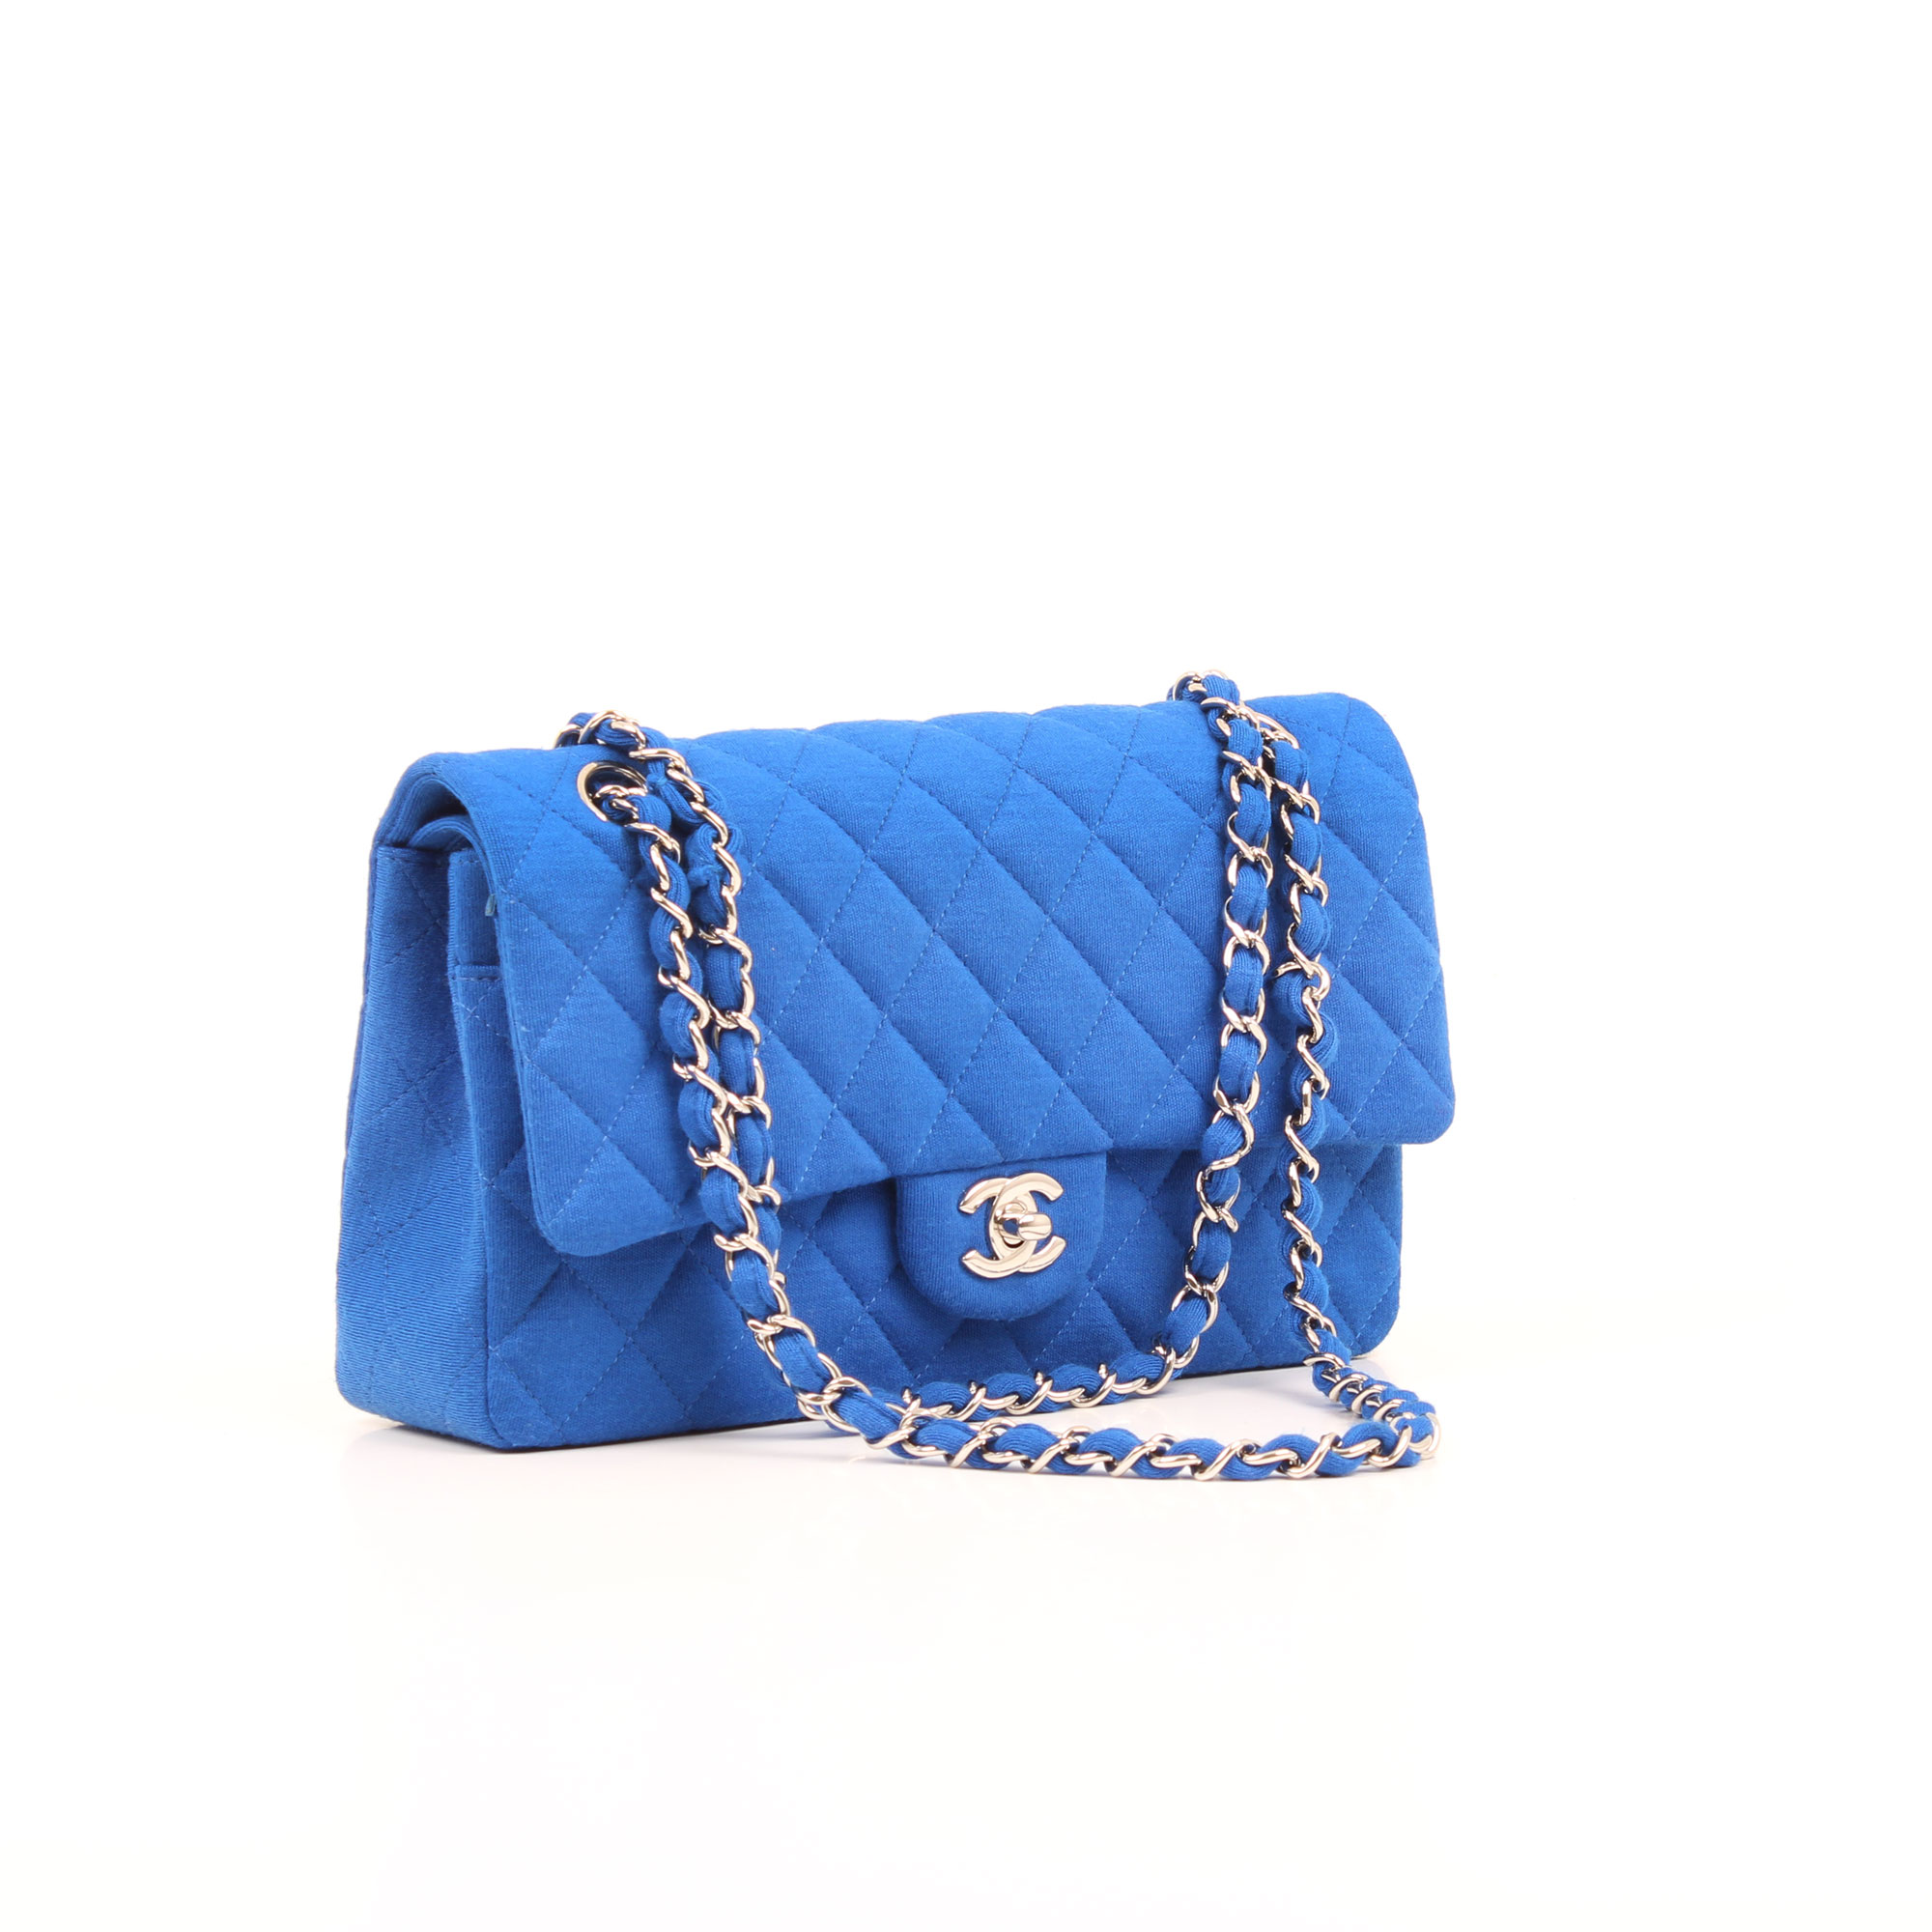 Bolso Chanel Double Flap Azul.